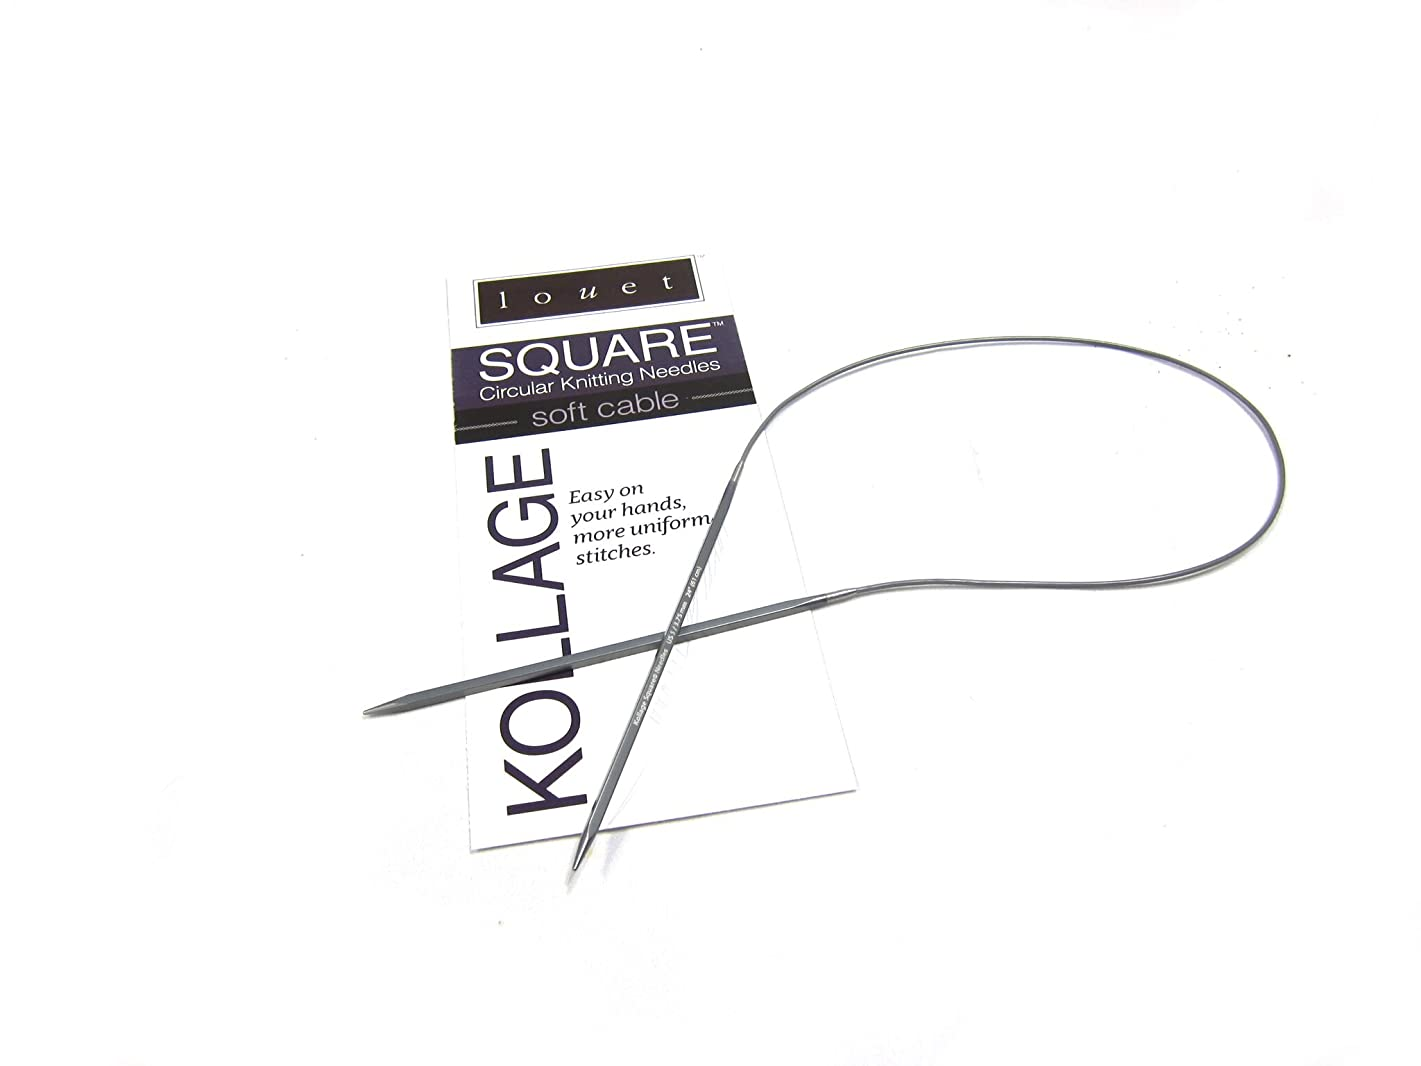 Kollage Square Circular 16-inch (41cm) Knitting Needle with Soft Cable (US 1/2.25mm)